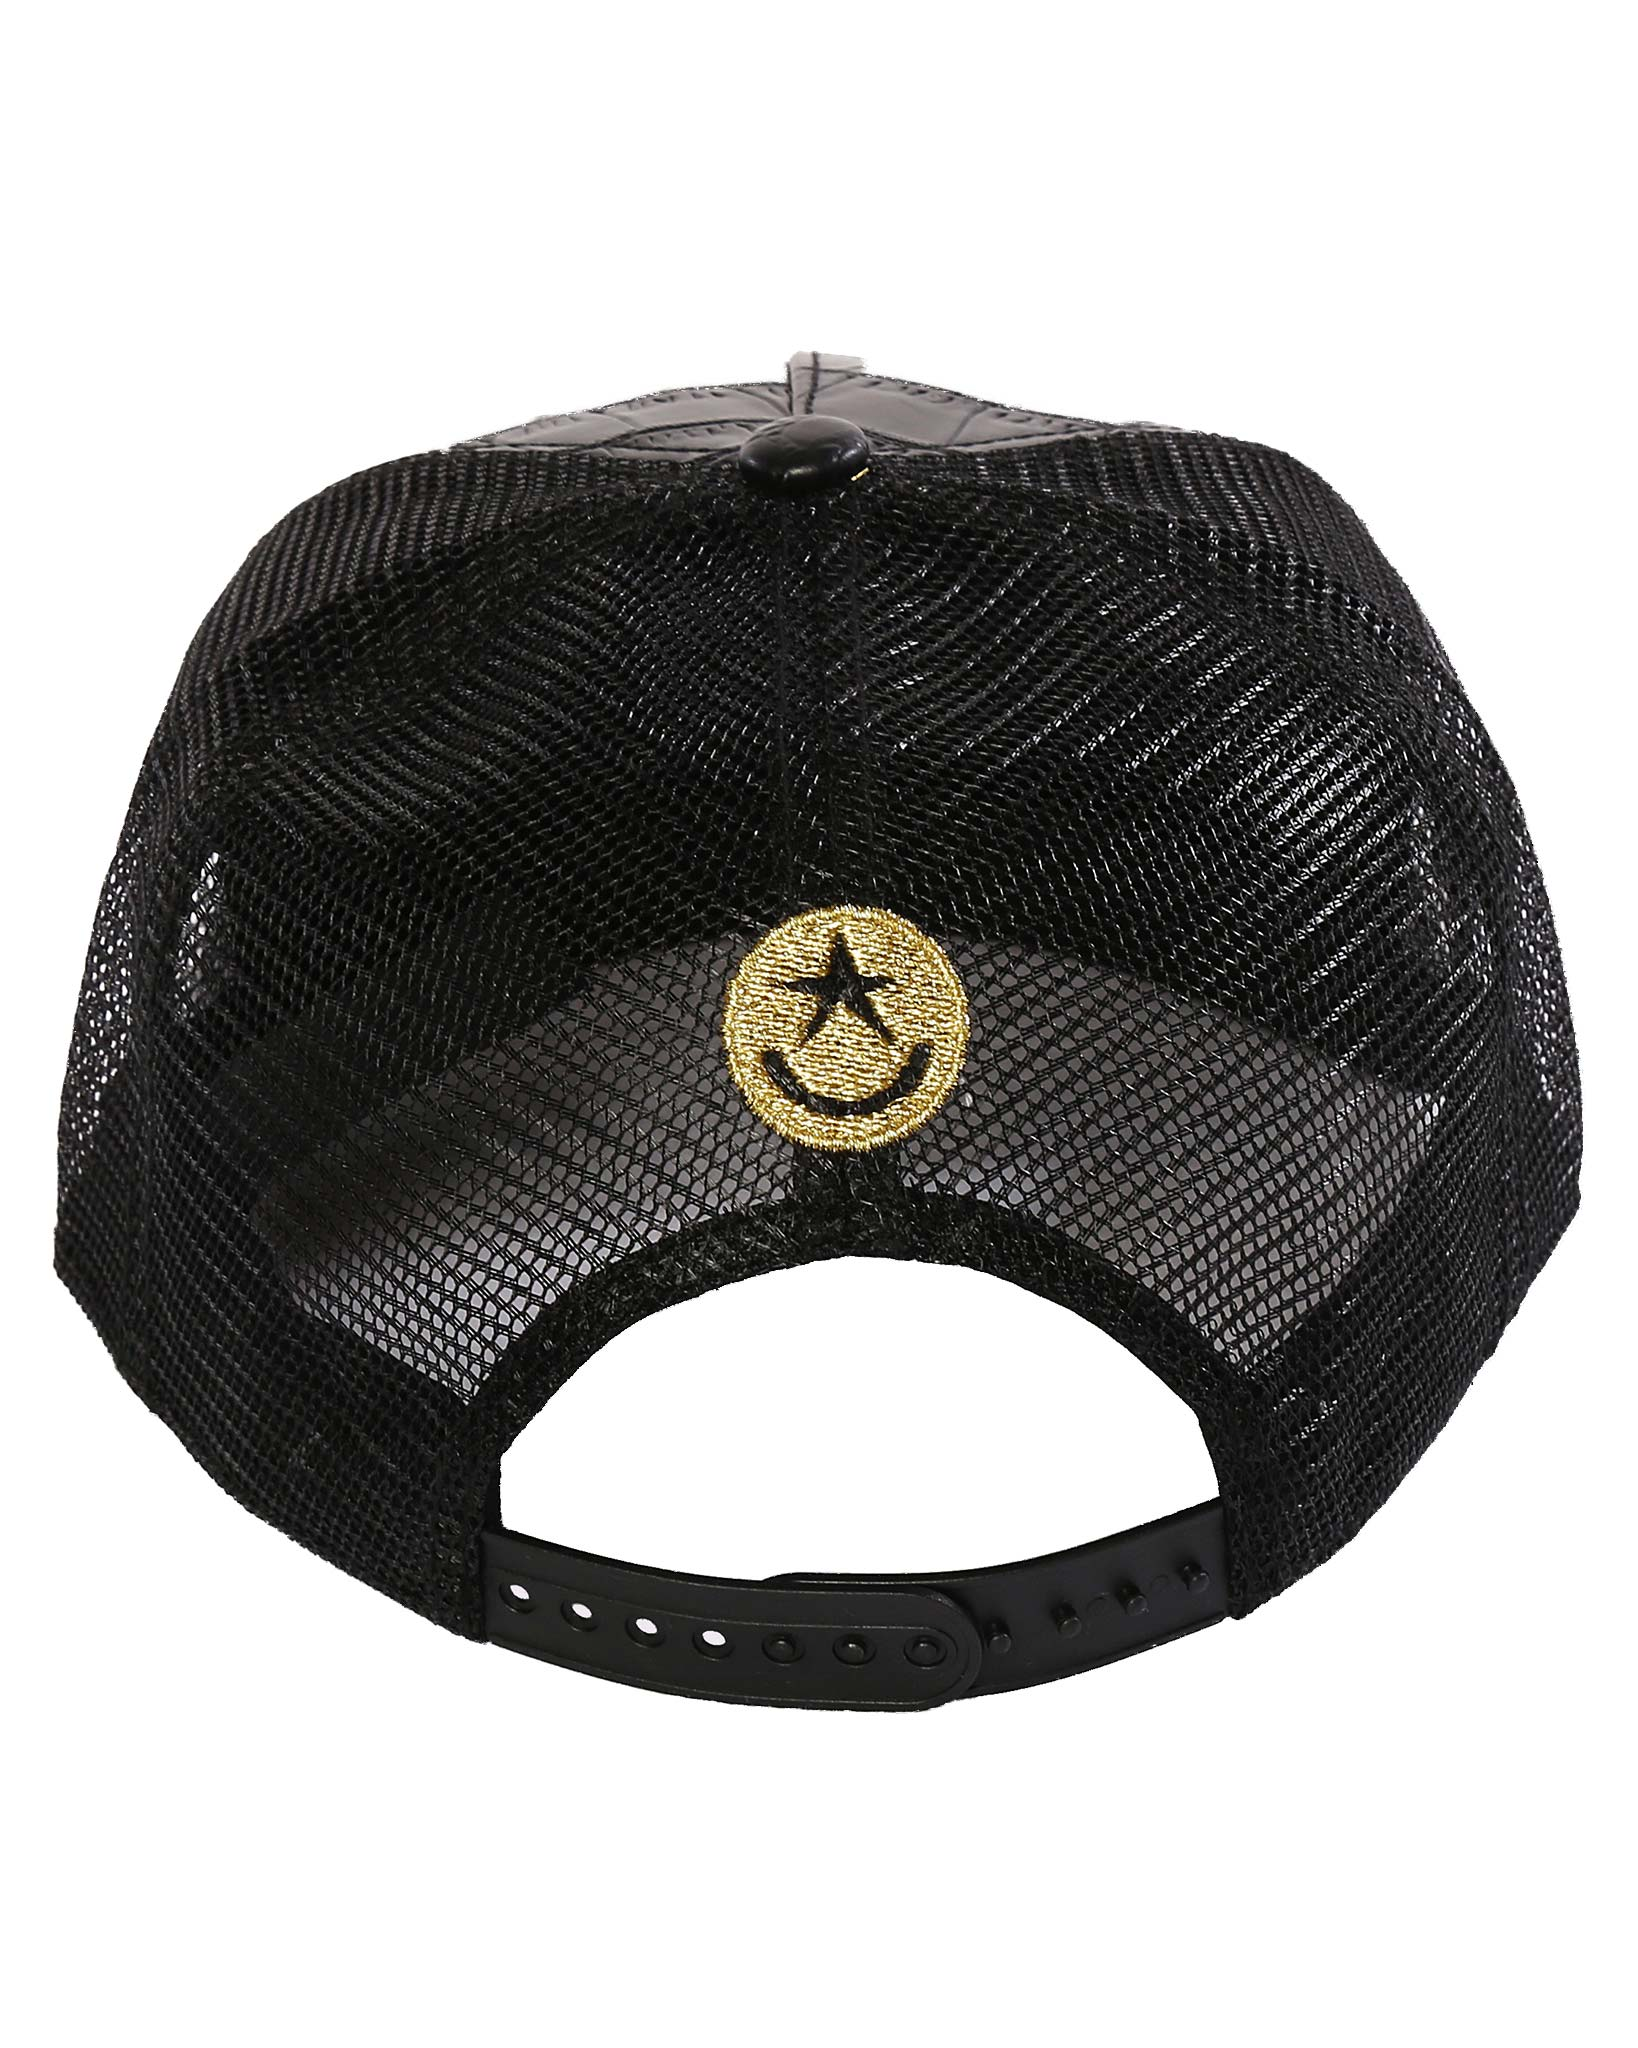 Bang Of Gold Hat (Black) Bang Clothes Beach Nightlife Gym Gear For Men Accessories